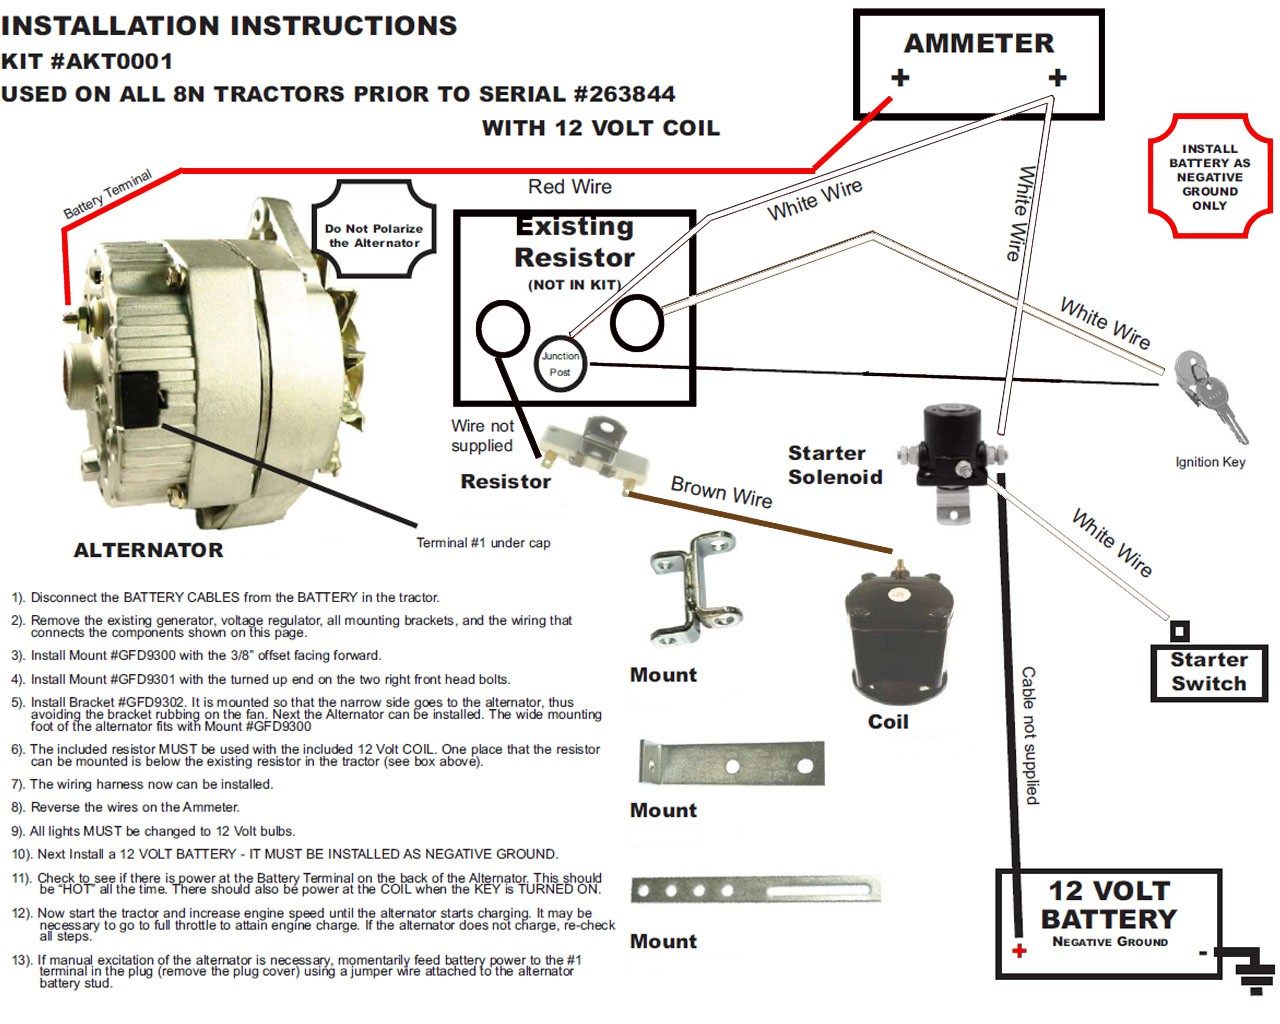 ford 8n starter solenoid wiring diagram wall outlet diagrams new alternator conversion kit fits early 2n tractors